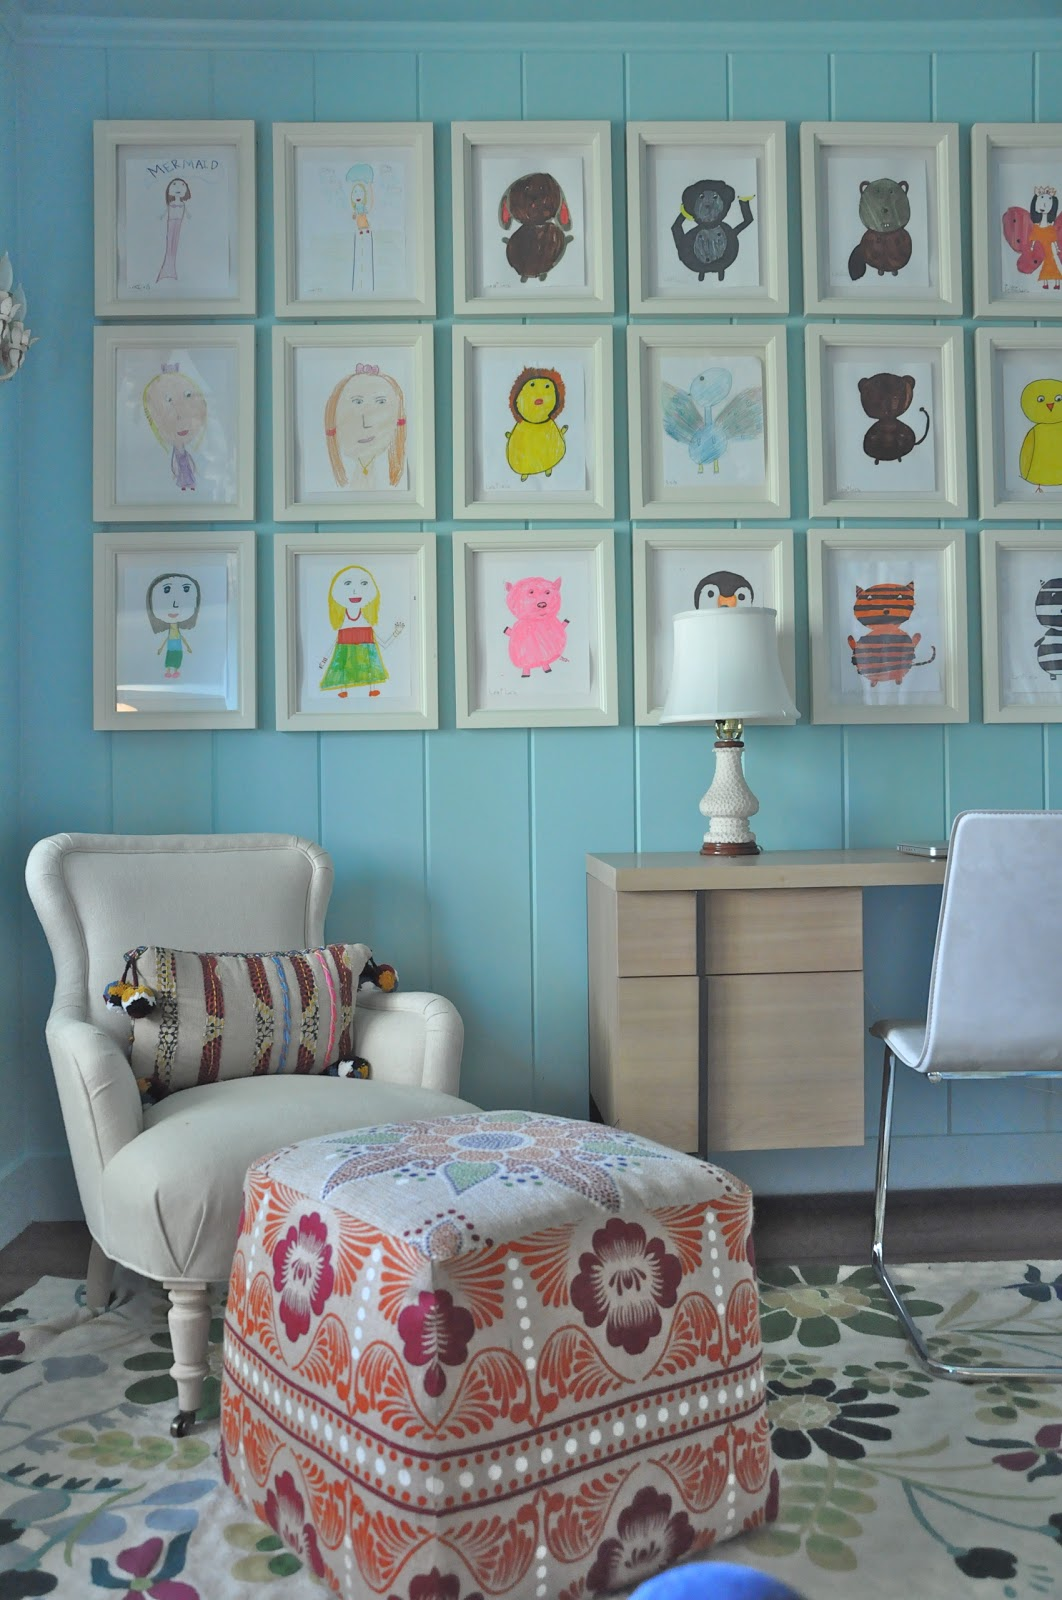 A 10 Year Old s Room by Giannetti Designs Via Made by